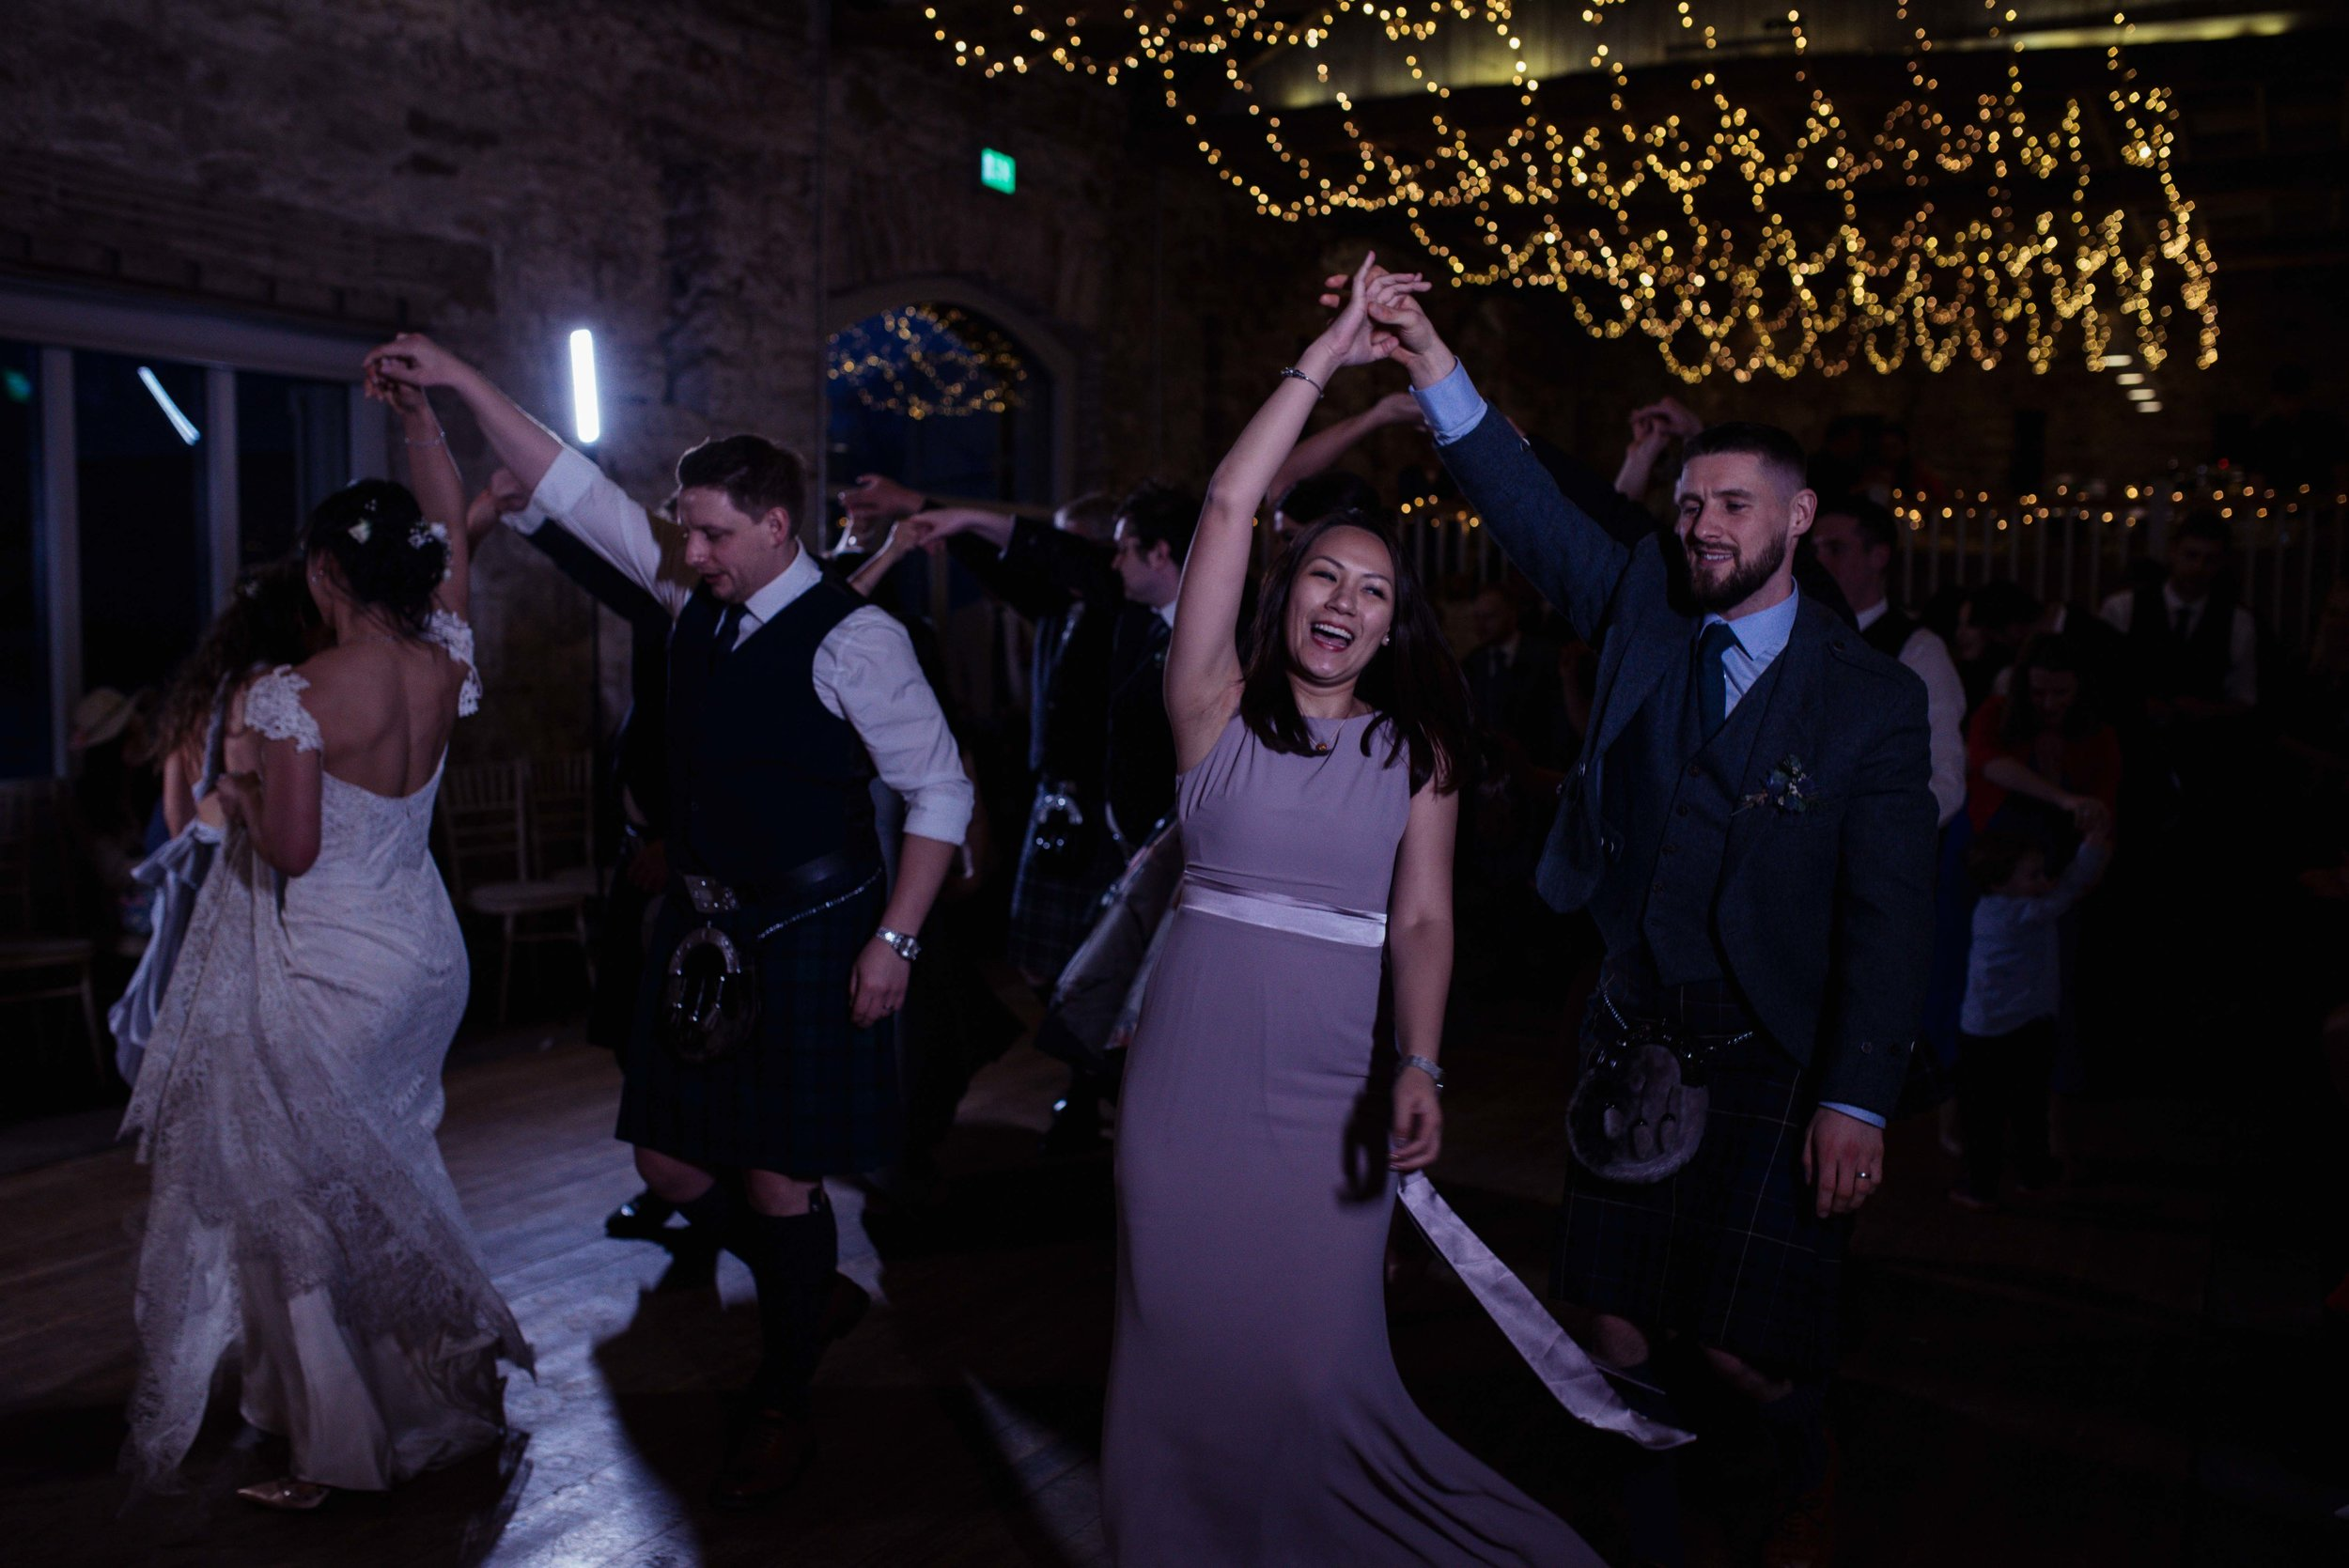 Wedding guests gather on the dance floor to continue the dancing